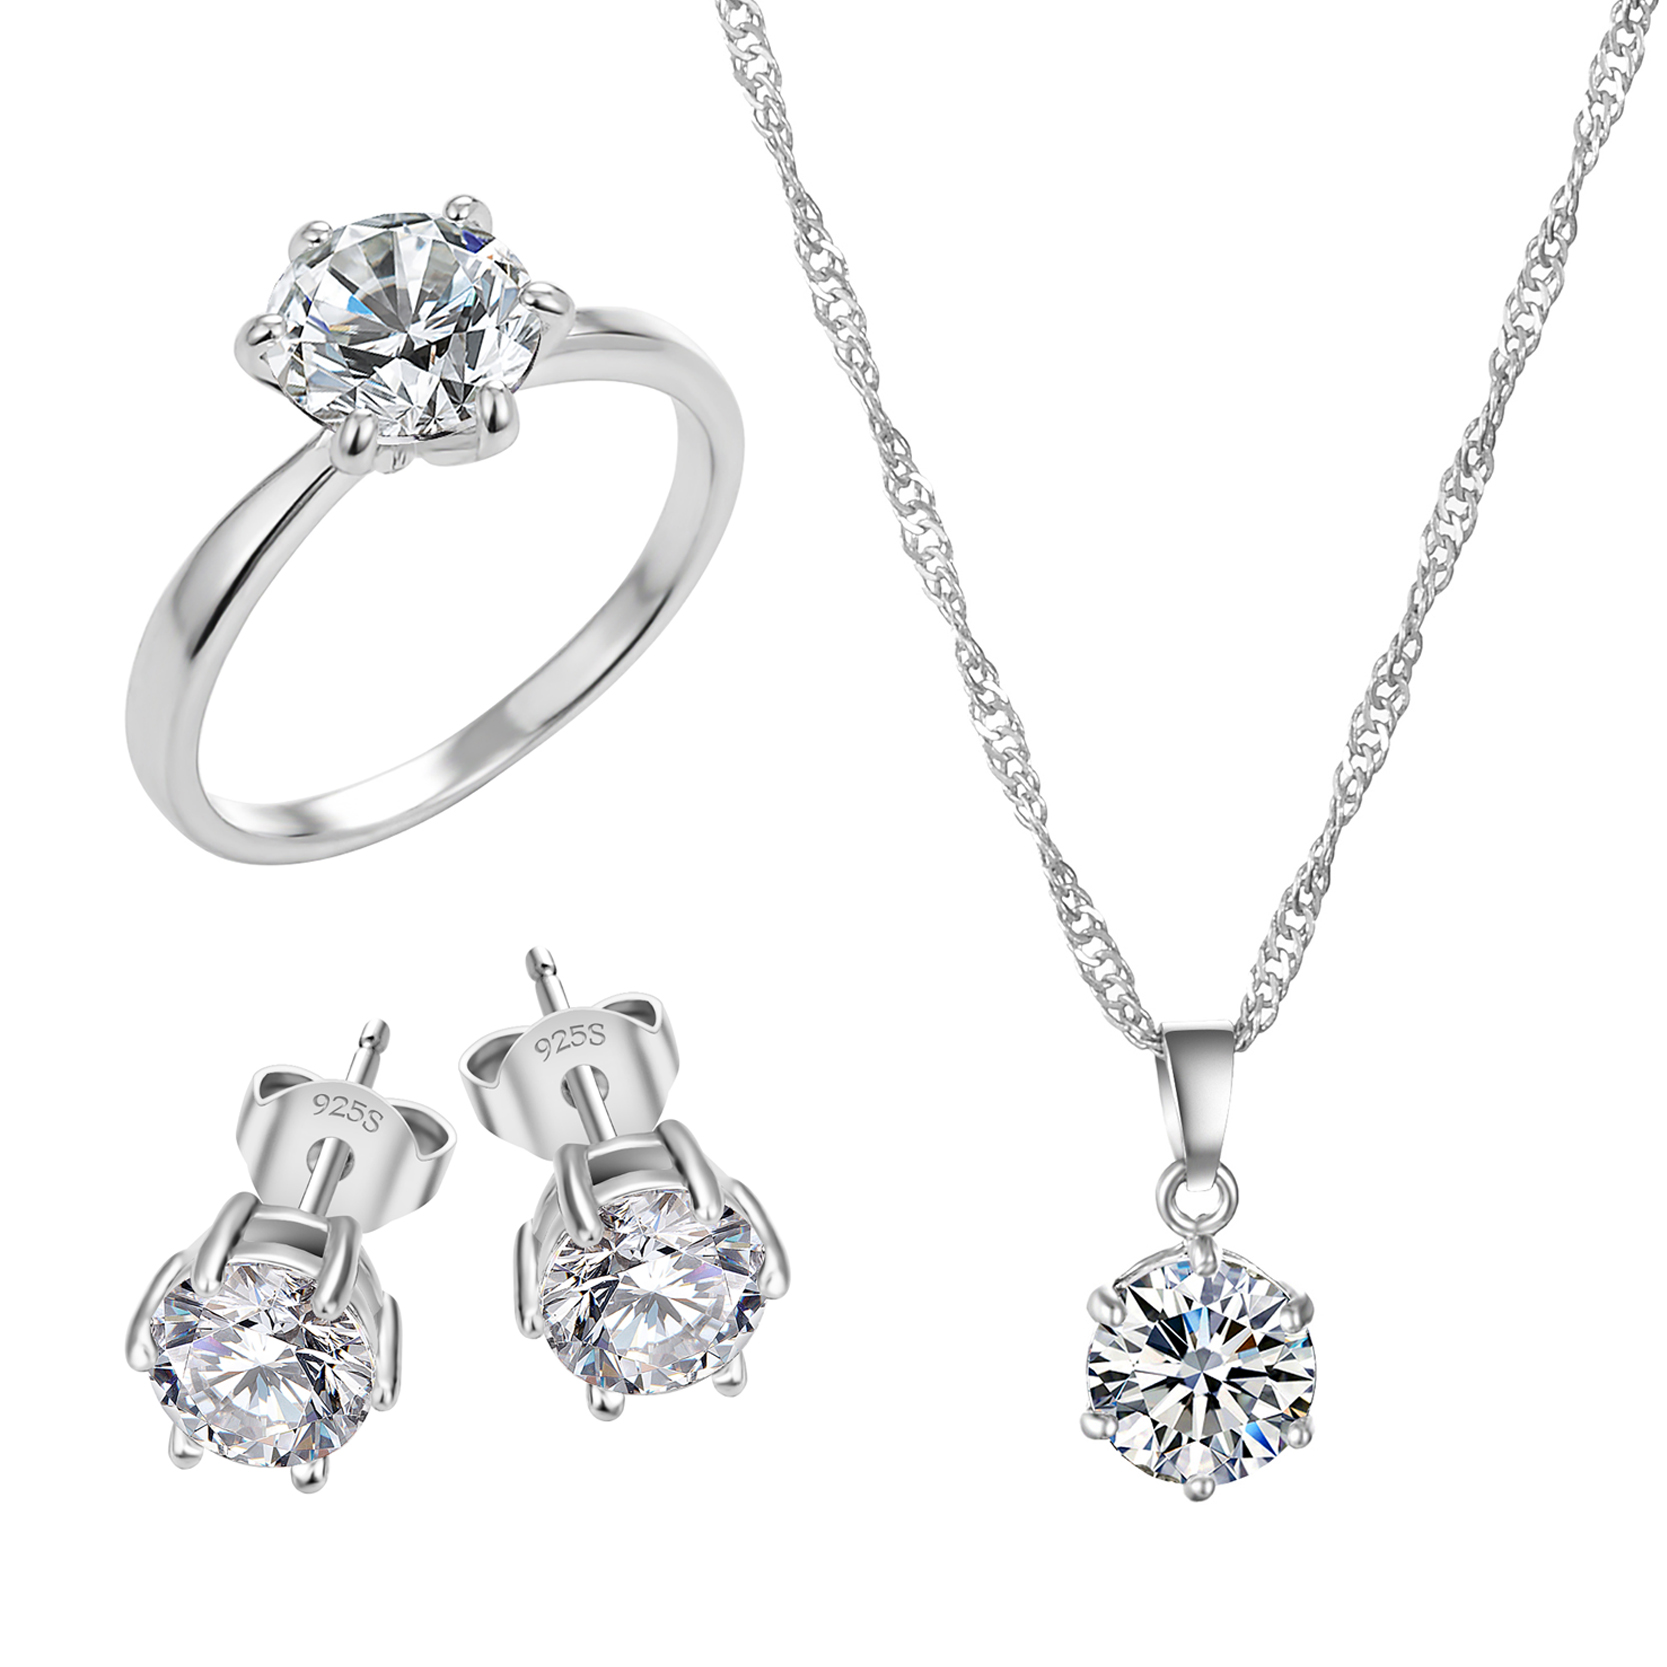 Fashion Silver Color Cubic Zircon Jewelry Sets Hot Promotions Jewelry Jewelry Sets Women Jewelry